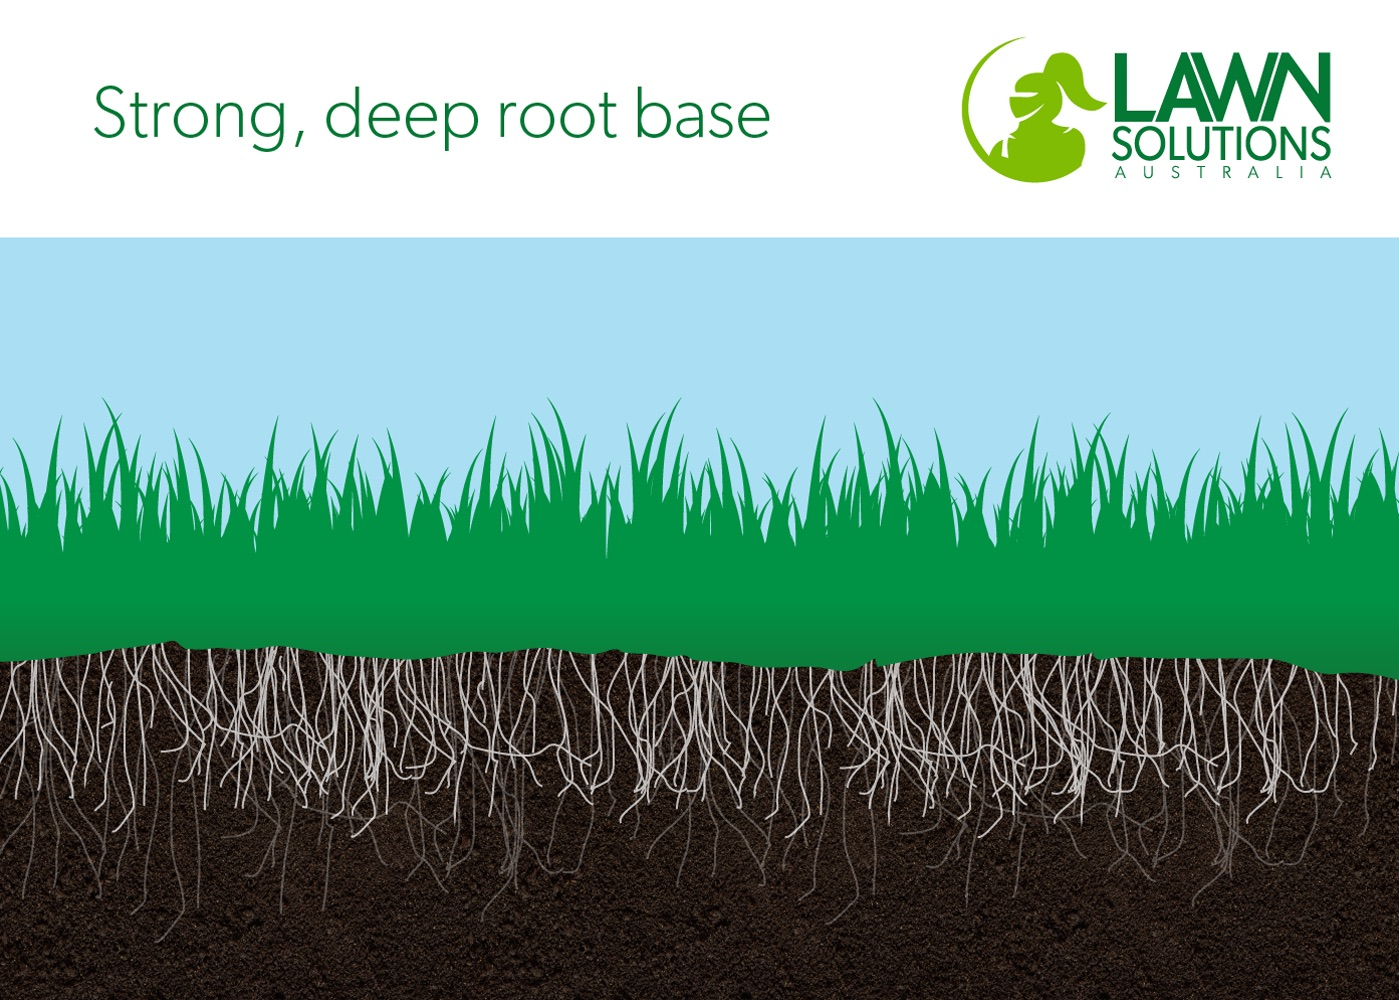 Strong deep root base